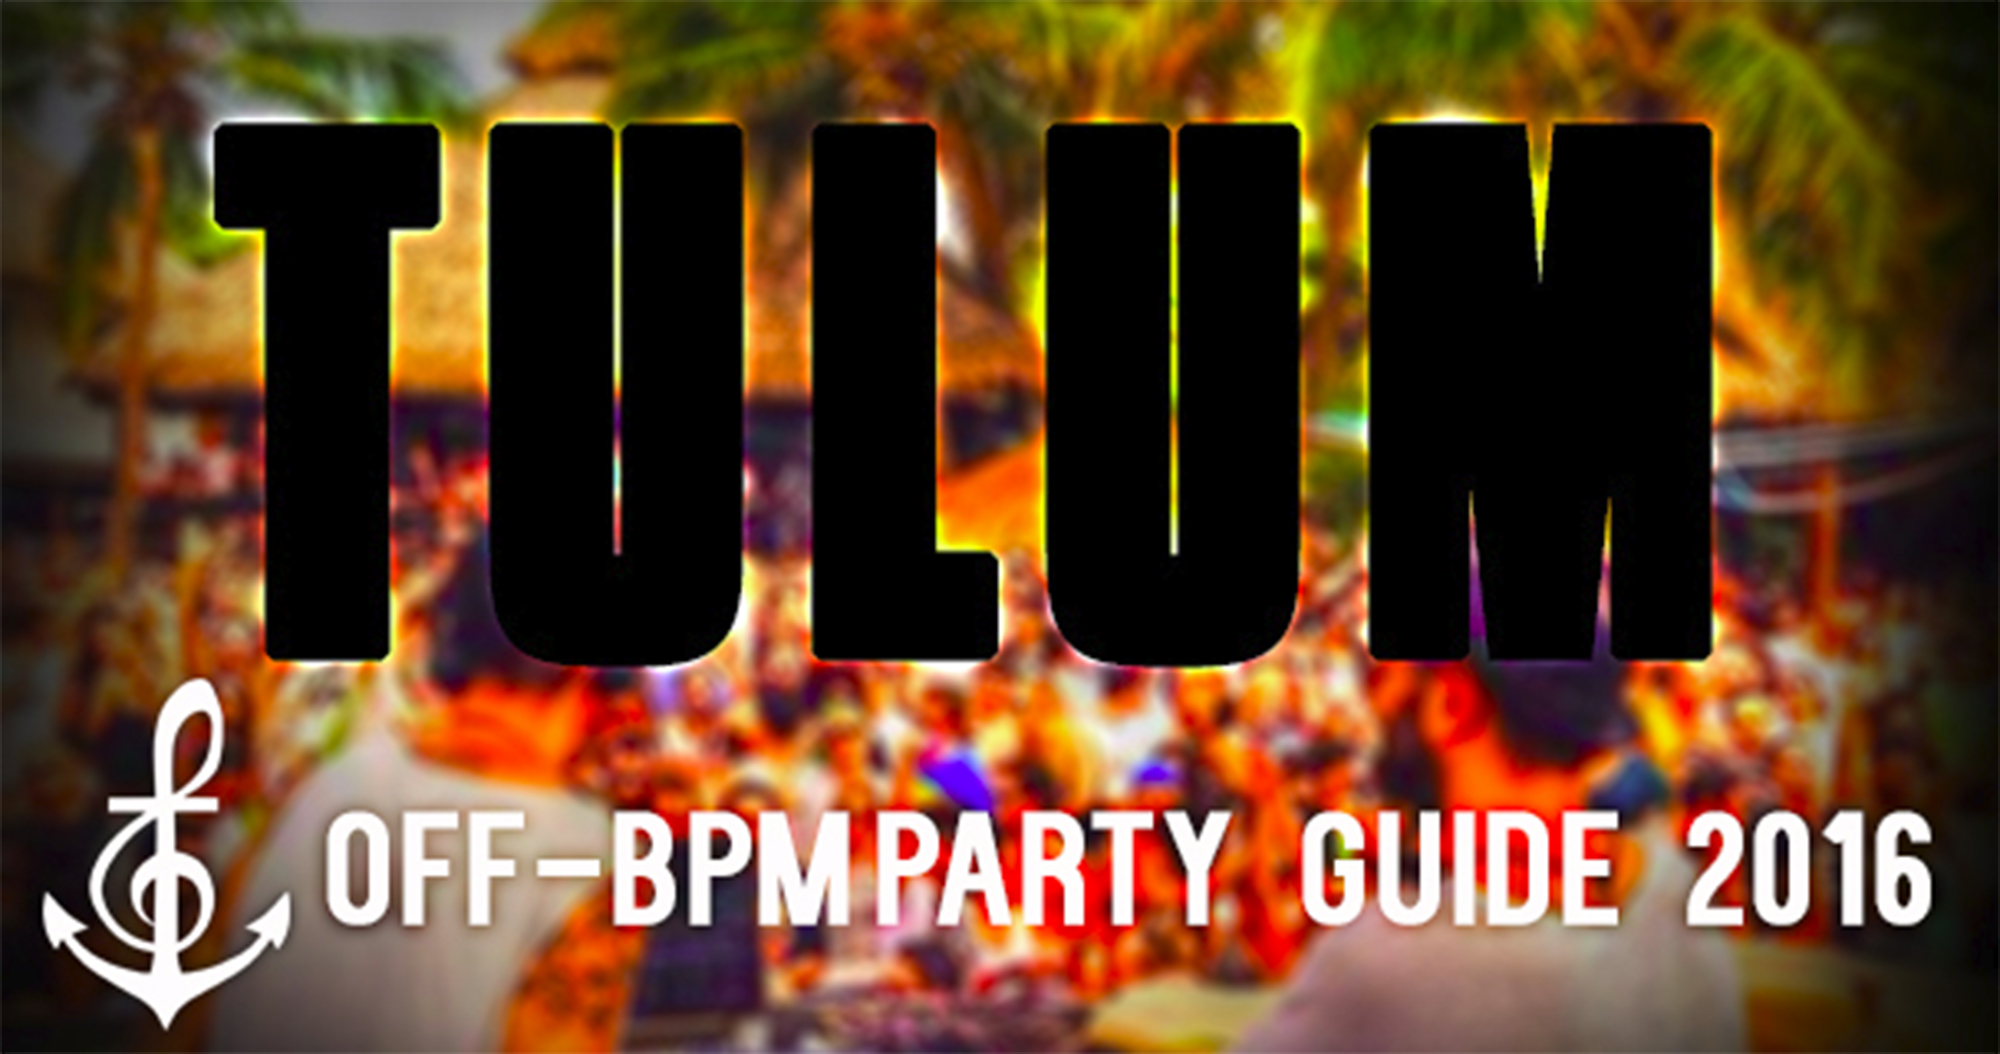 BPM 2016 Tulum Parties, Afterparties, Off-BPM, Beach Party, Festivals Guide by DeeplyMoved